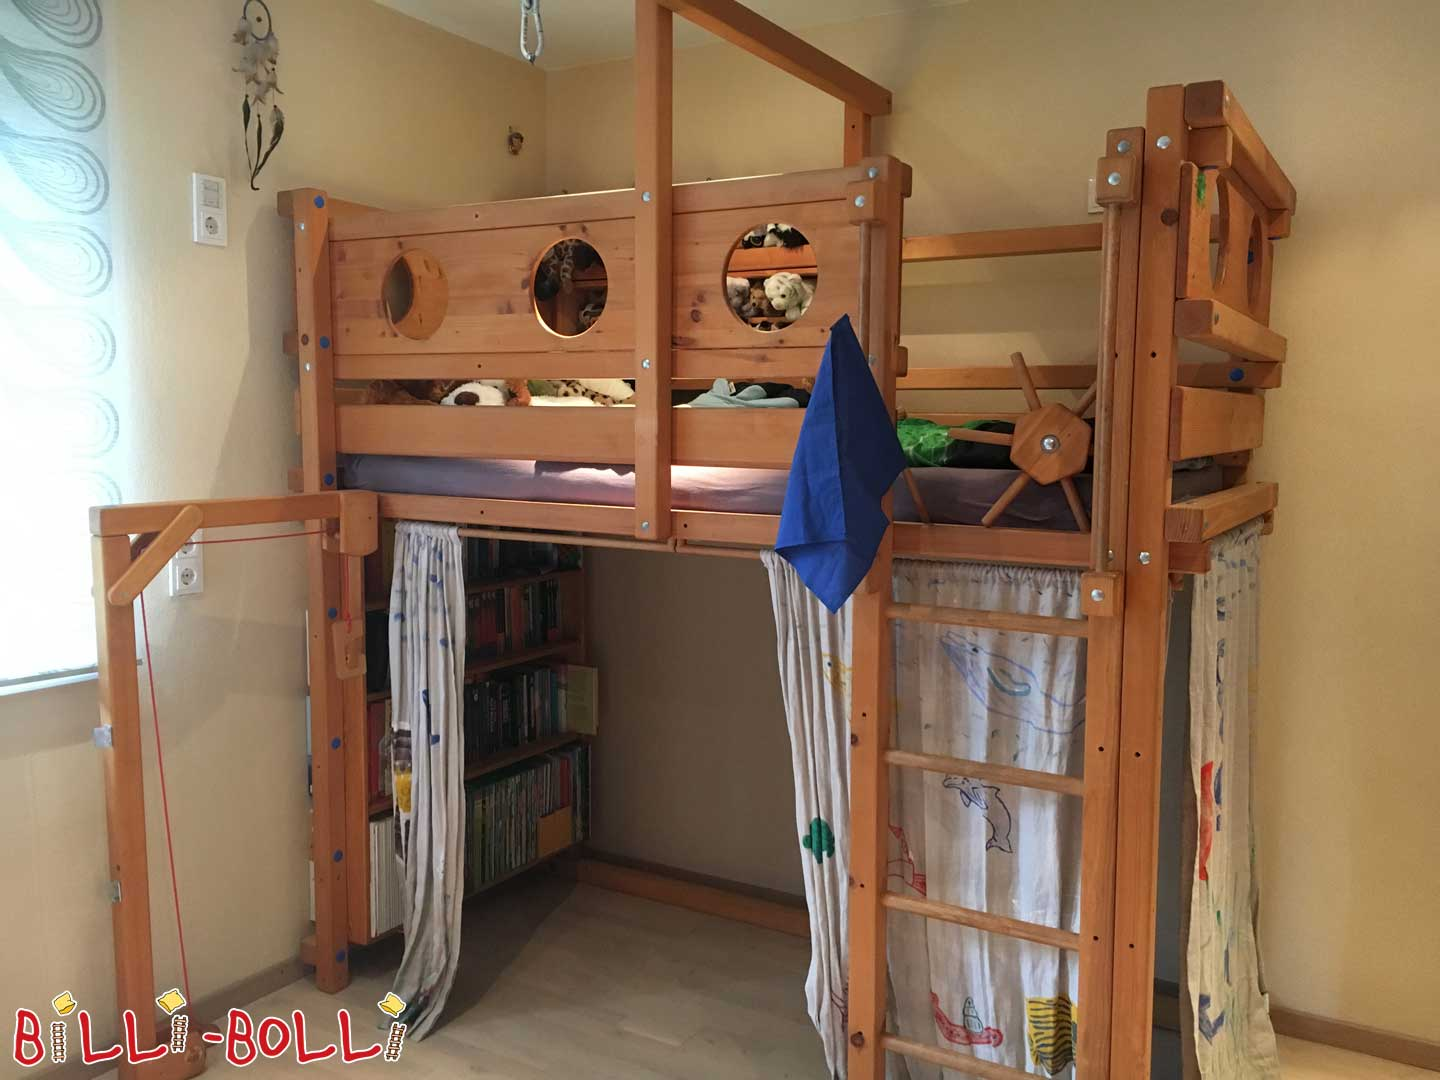 BILLI-BOLLI-BETT for pirates and adventurers! (growing bunk bed) (second hand loft bed)